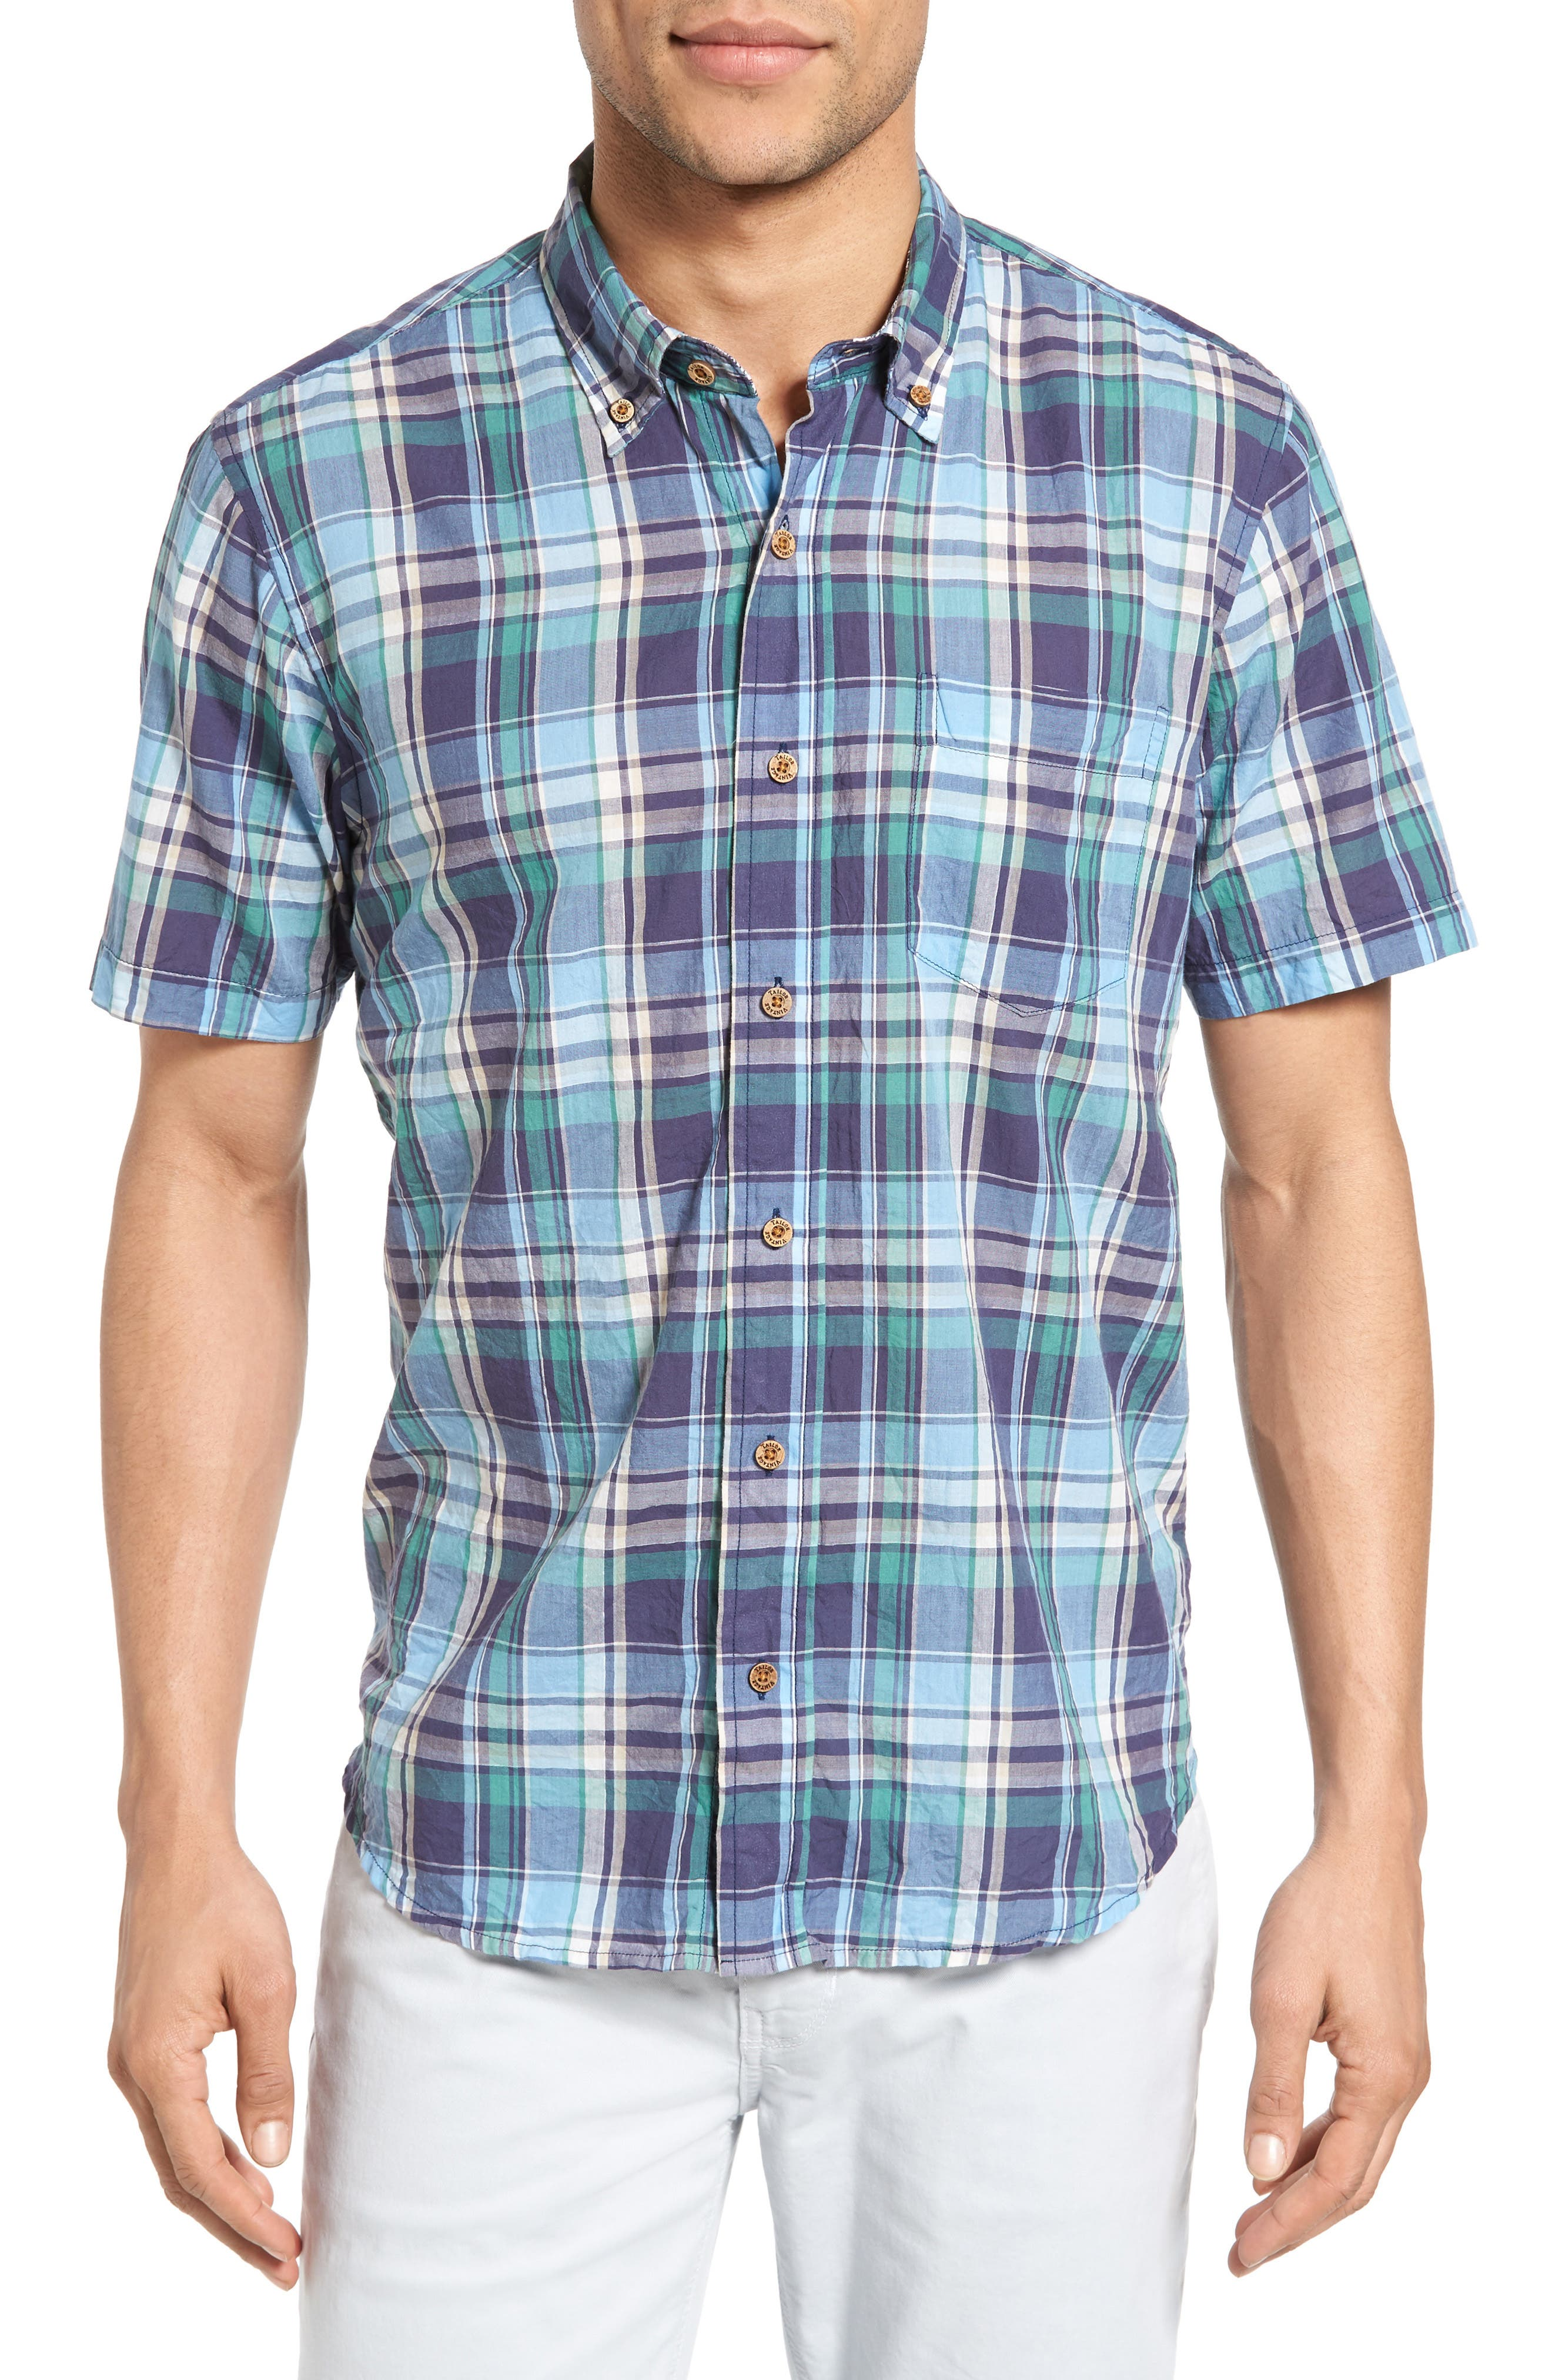 Alternate Image 1 Selected - Tailor Vintage Crinkle Plaid Sport Shirt